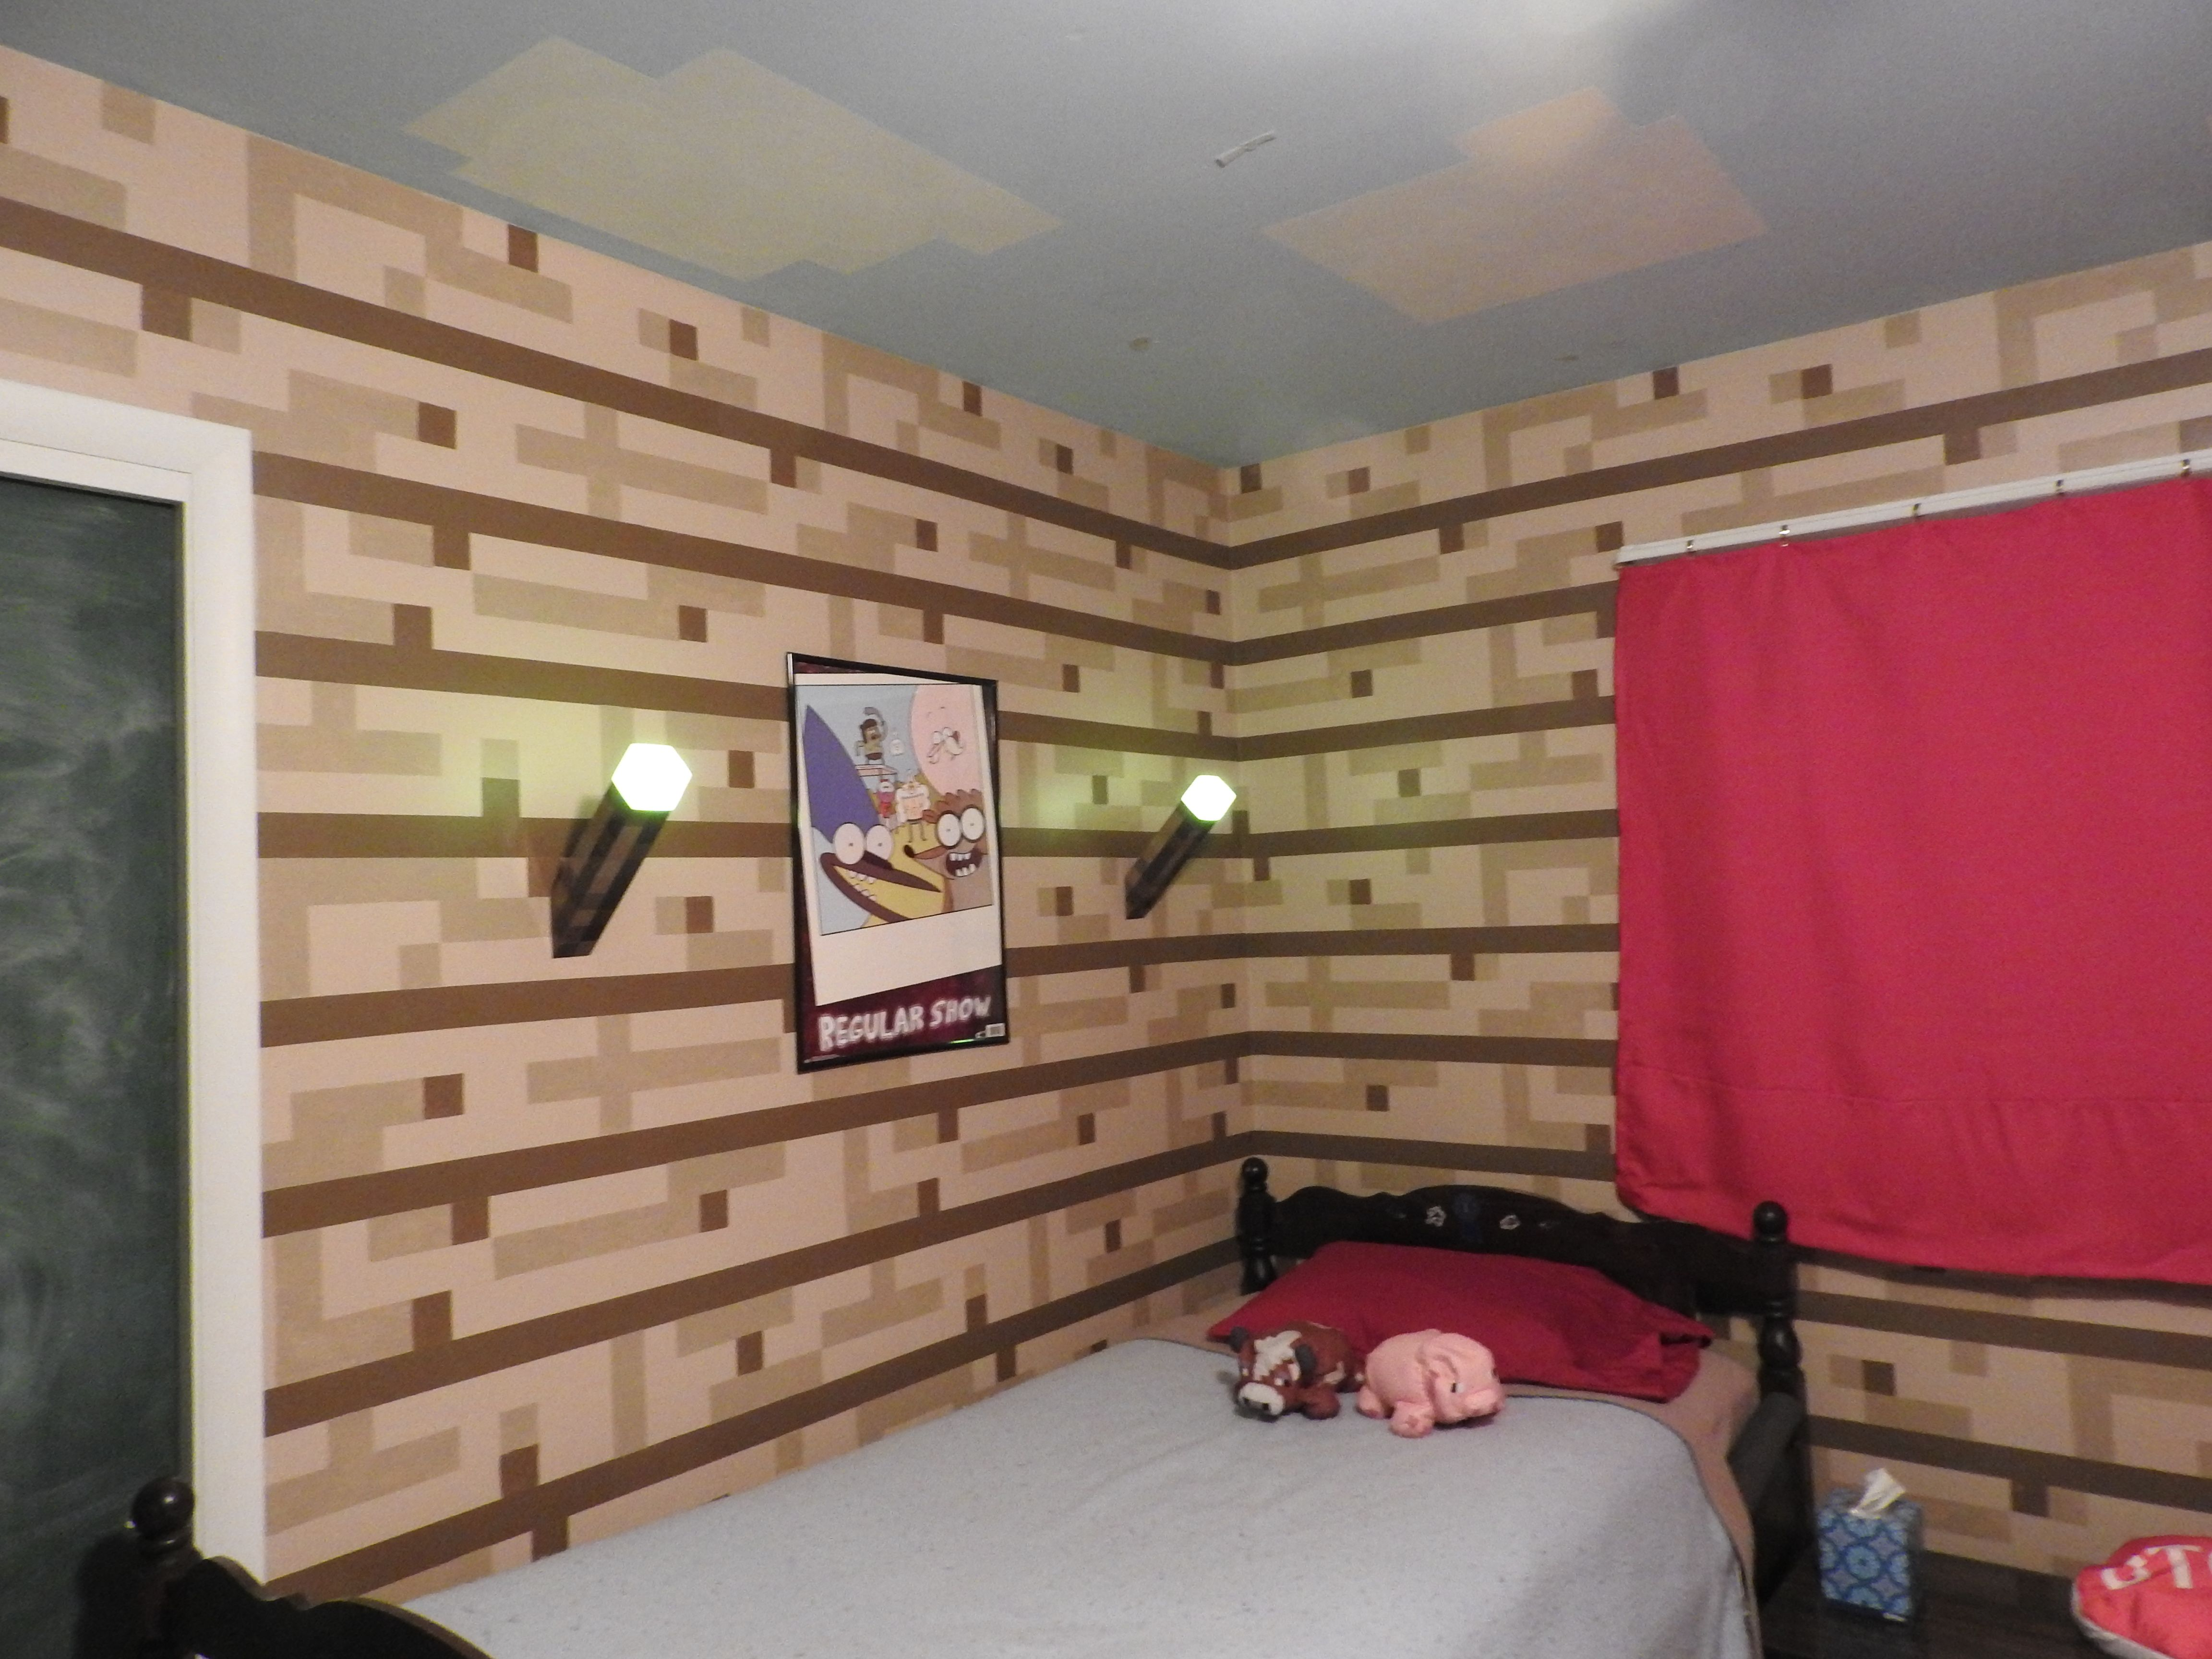 Minecraft Bedroom I Did For My Son! Hand Painted Walls Using Several  Stencils That I Designed.